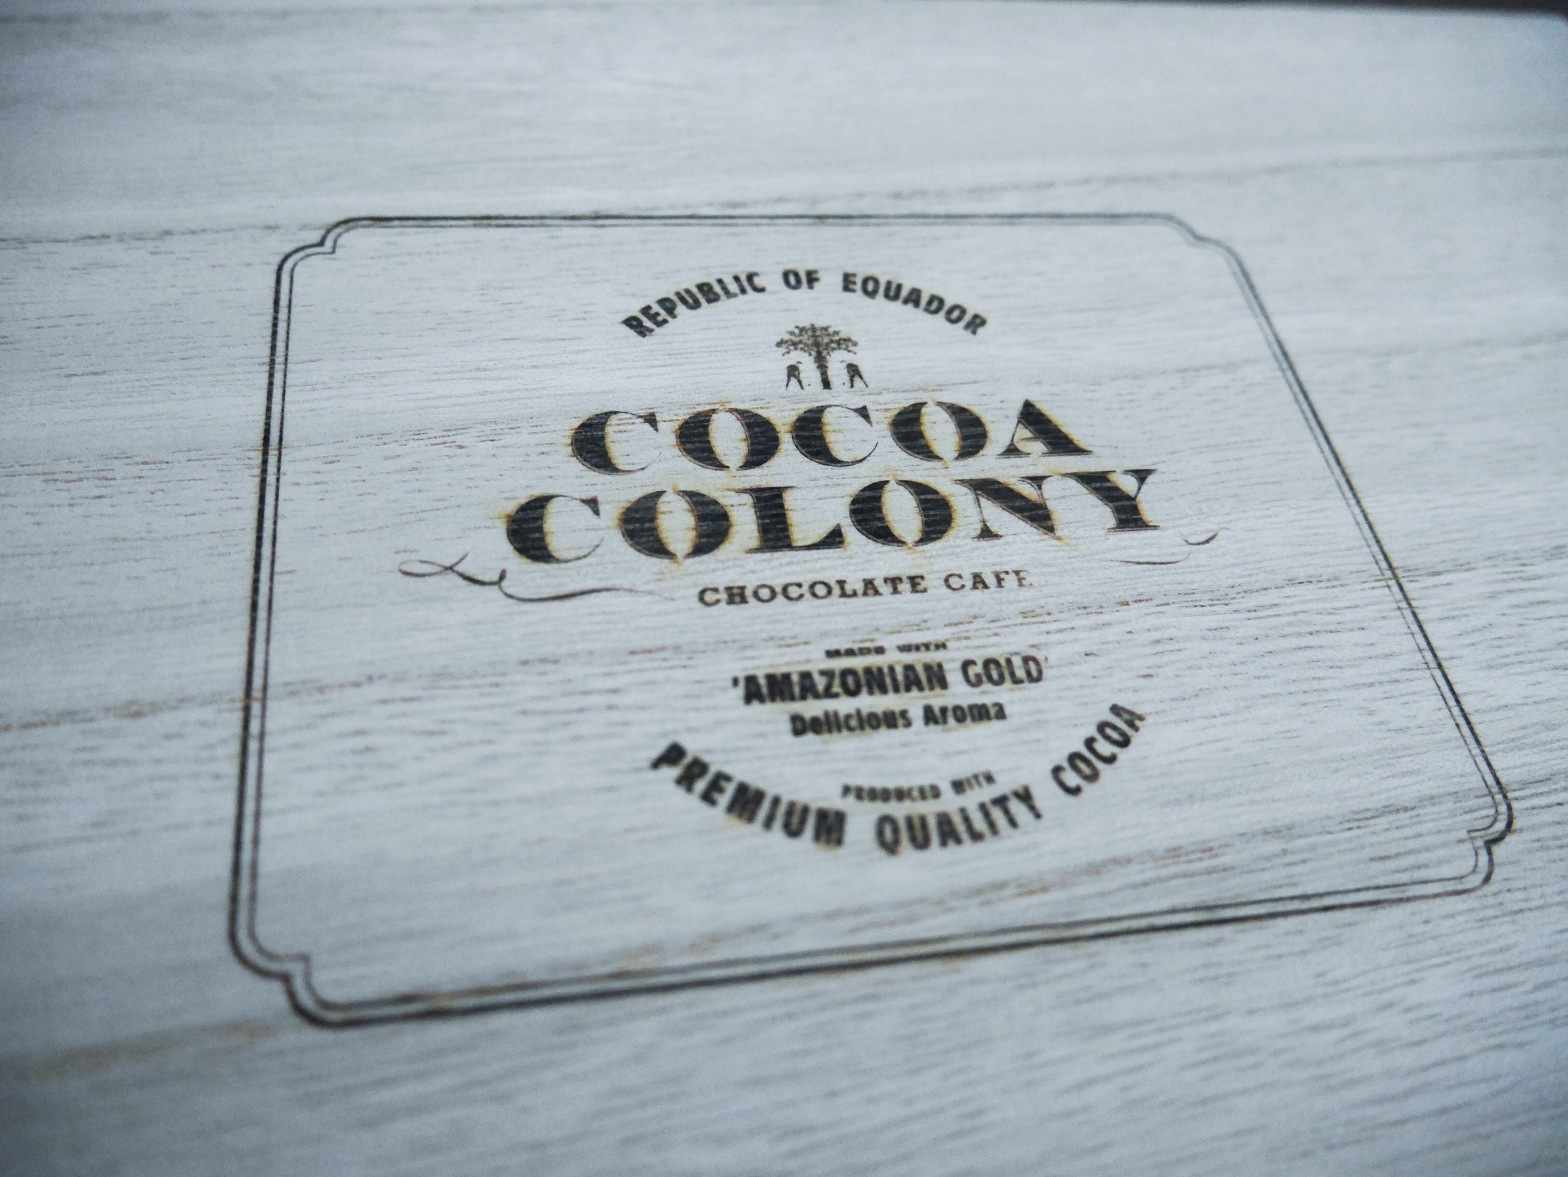 Cocoa Colony Singapore - Viktoria Jean